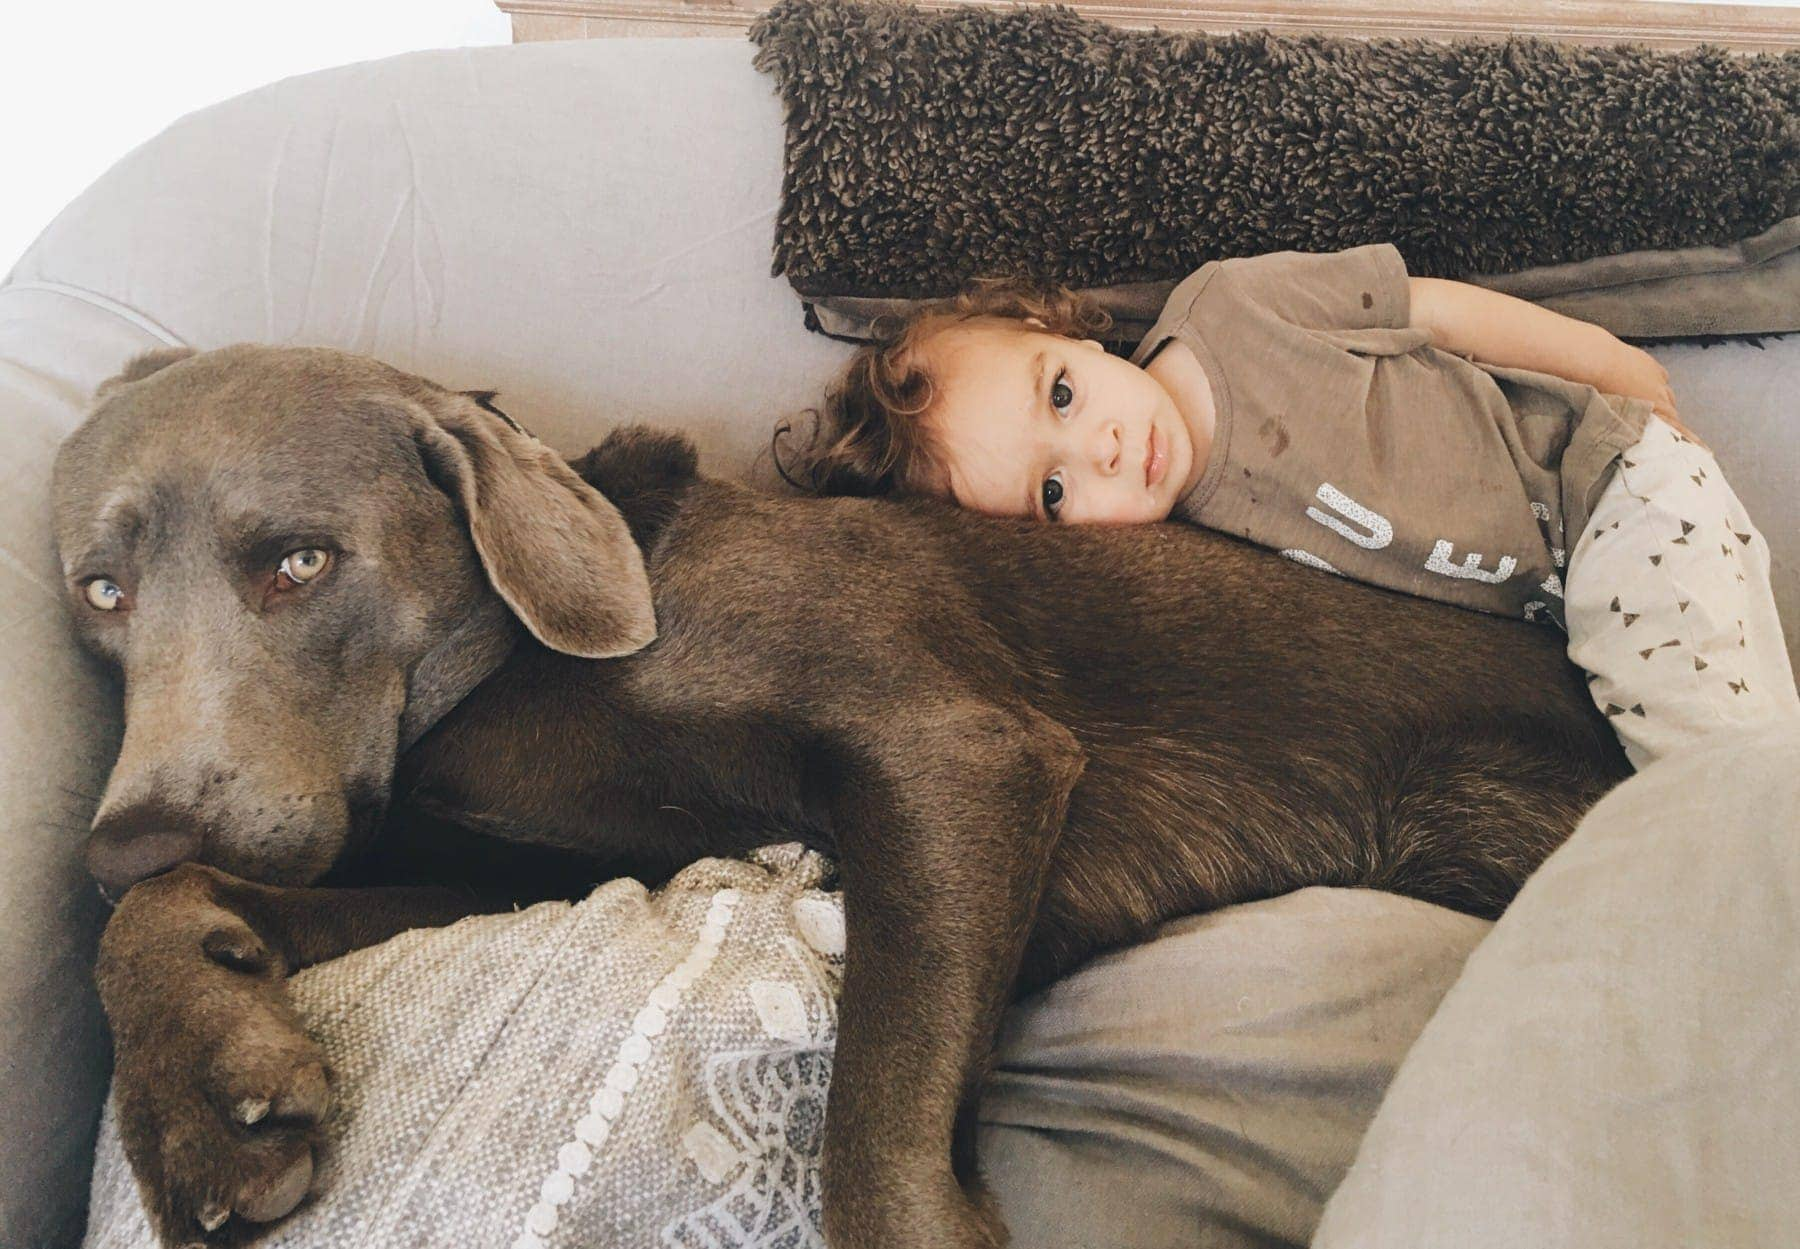 Photo of a Dog and A Kid Lying Beside Each Other #royalcanin #dog #dogfood #labrador #citygirlgonemom #Weimaraner